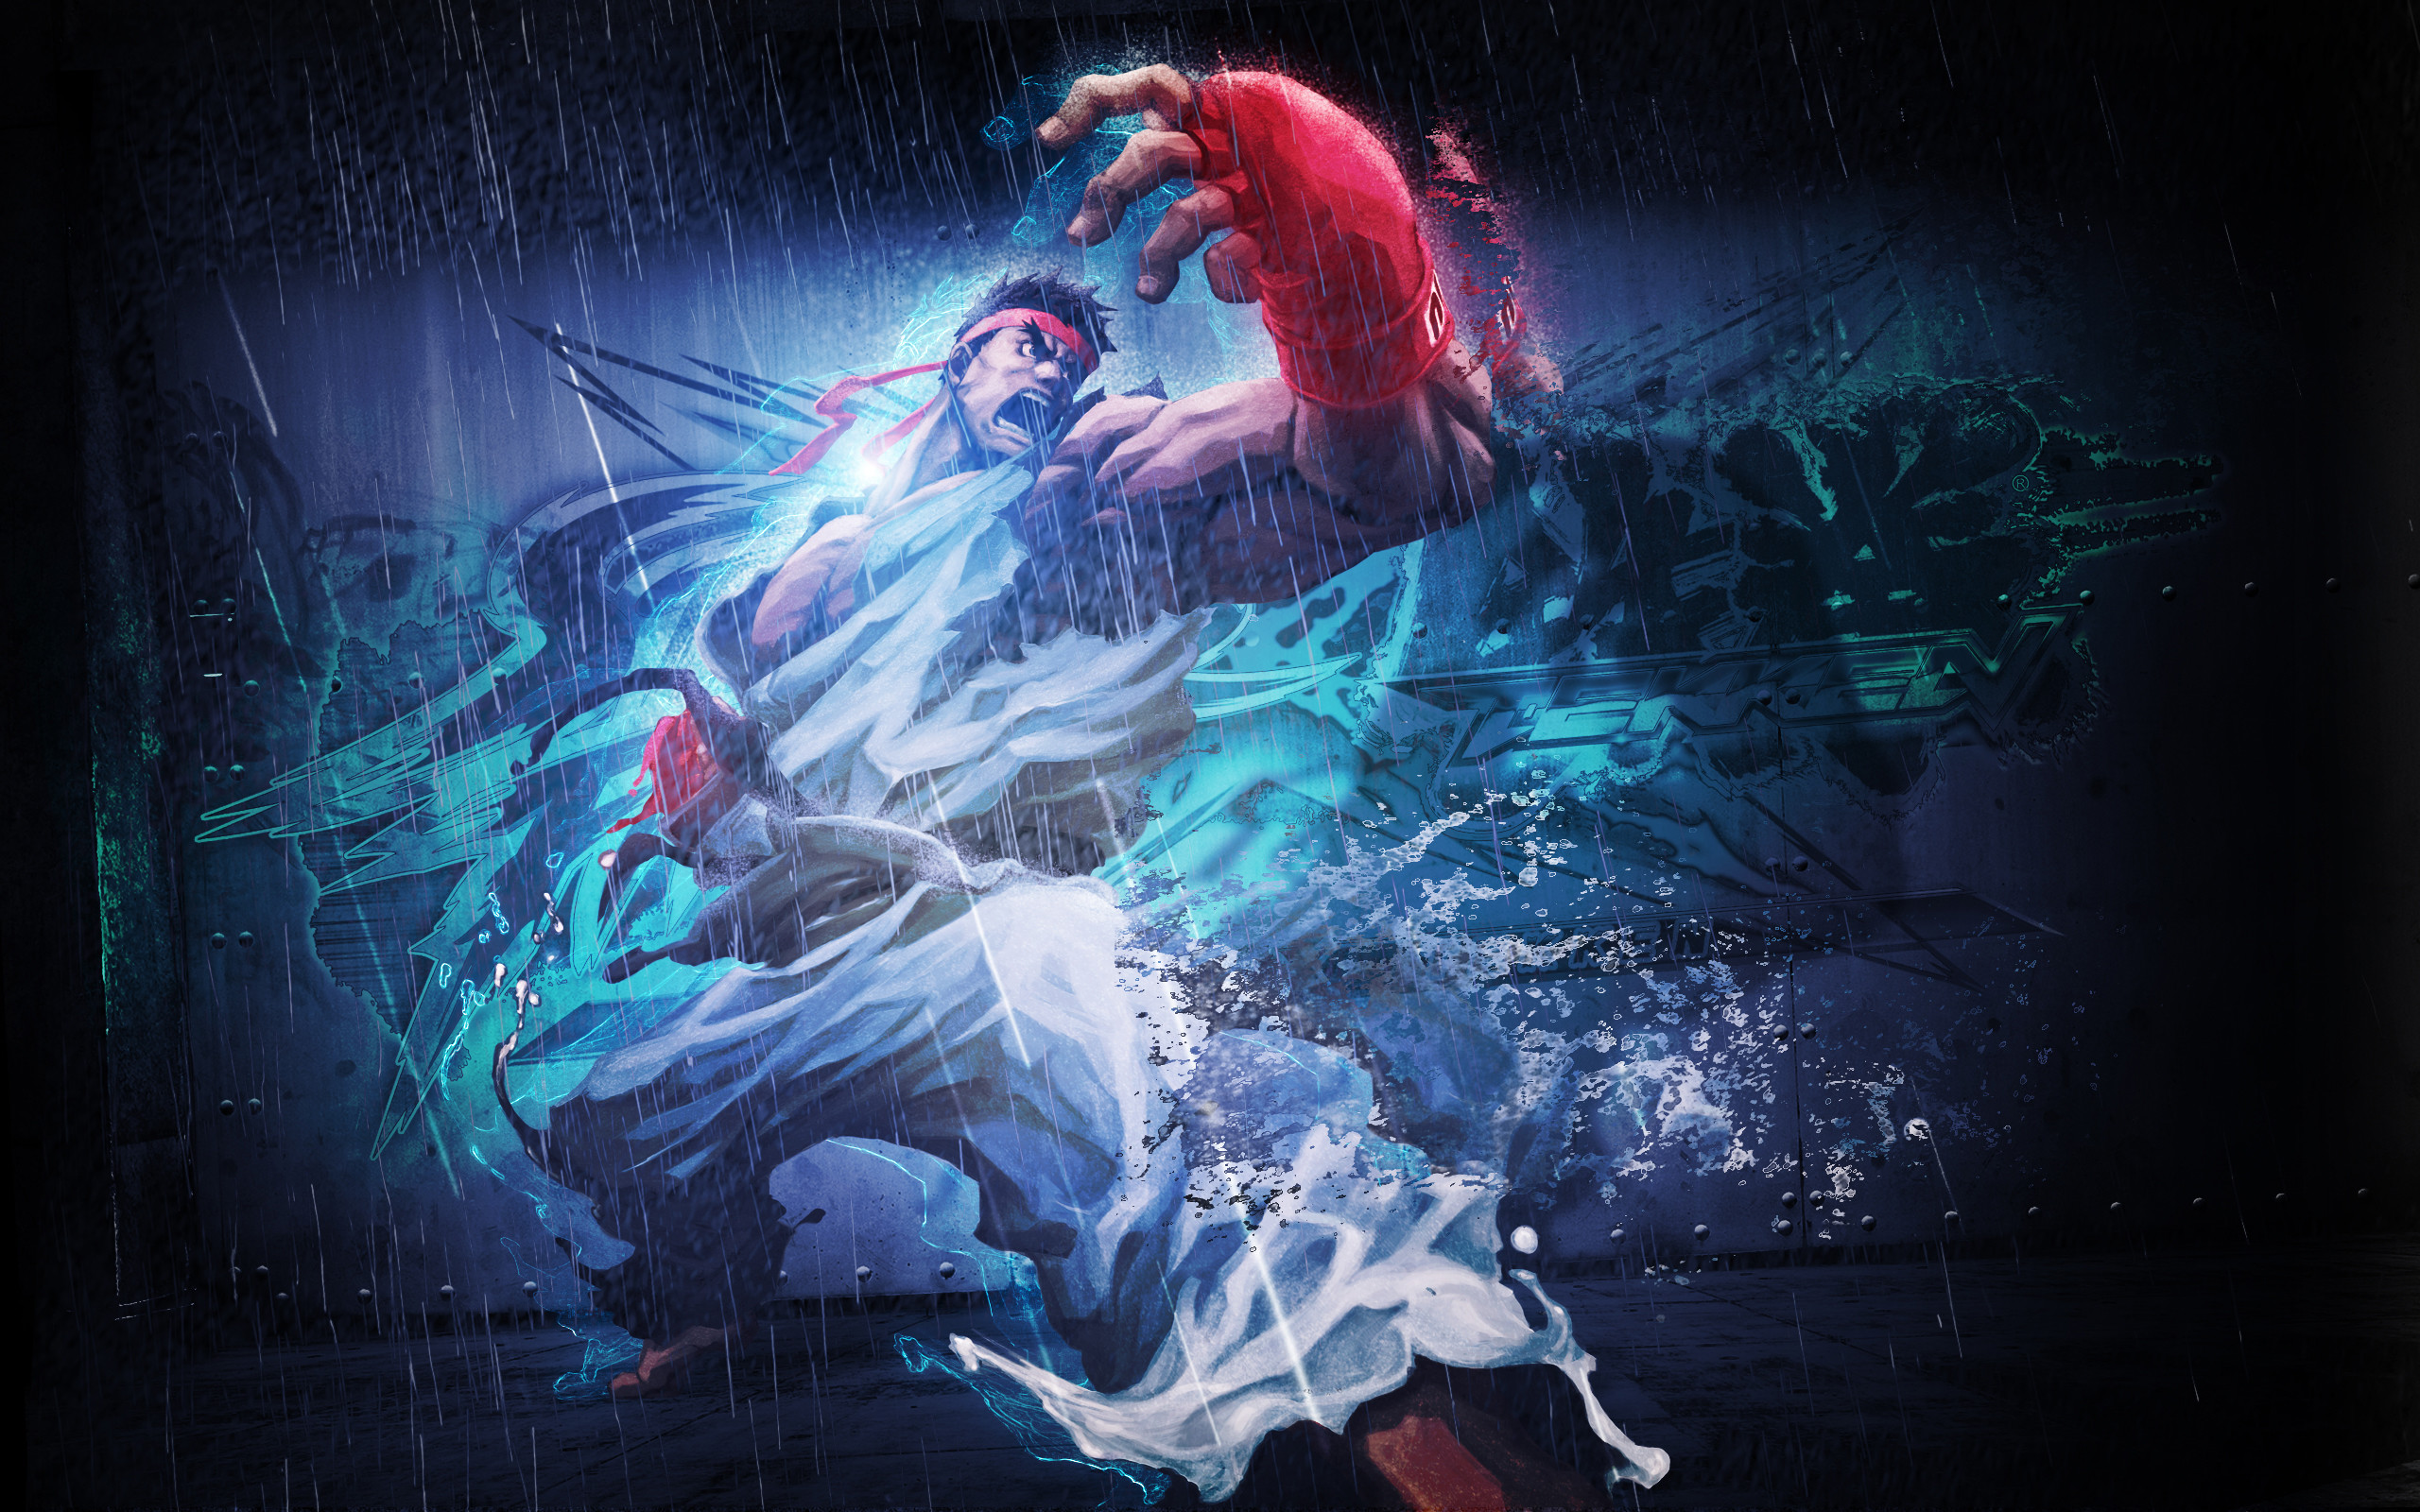 Ryu in The Street Fighter